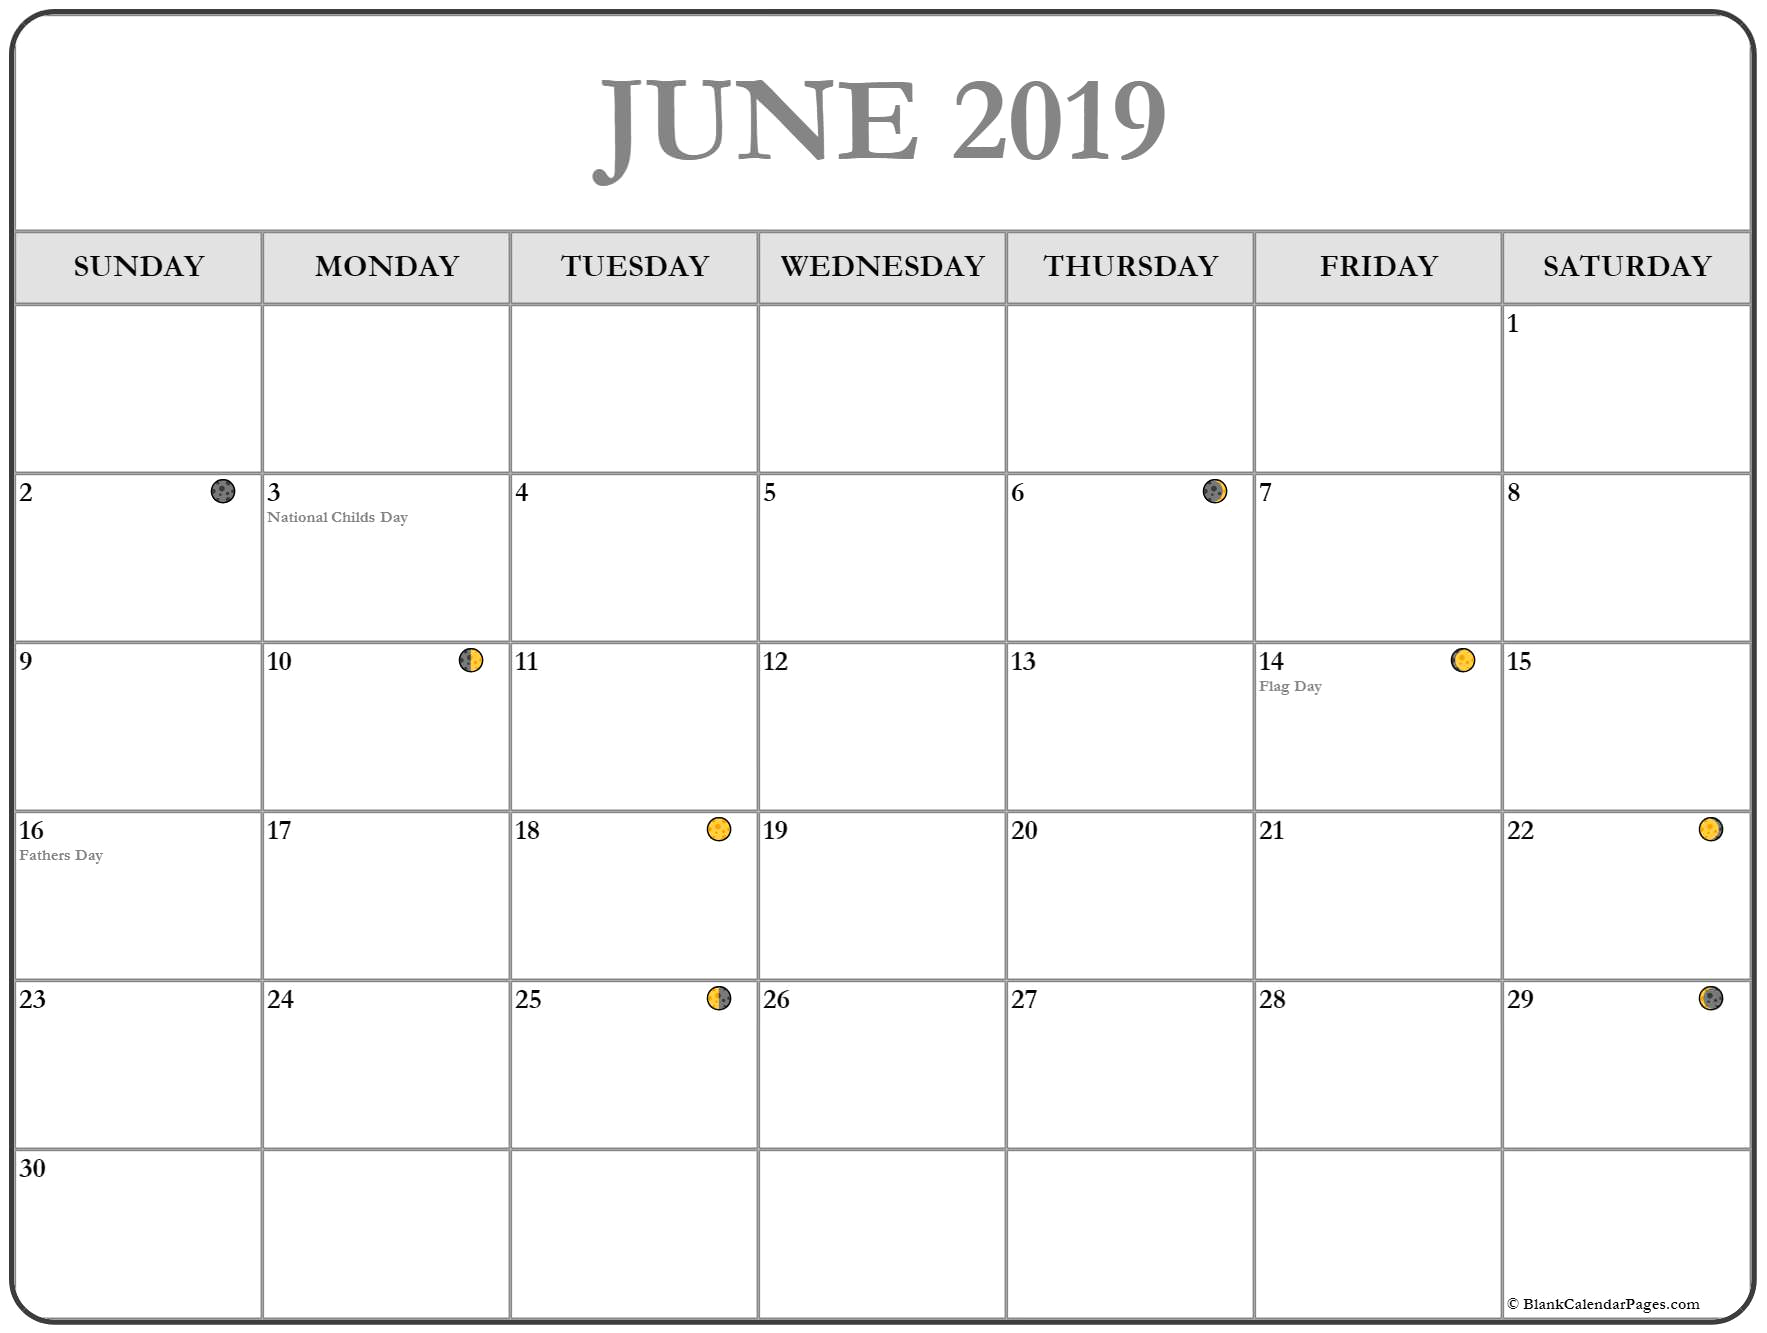 Moon Phases June 2019 Calendar Printable